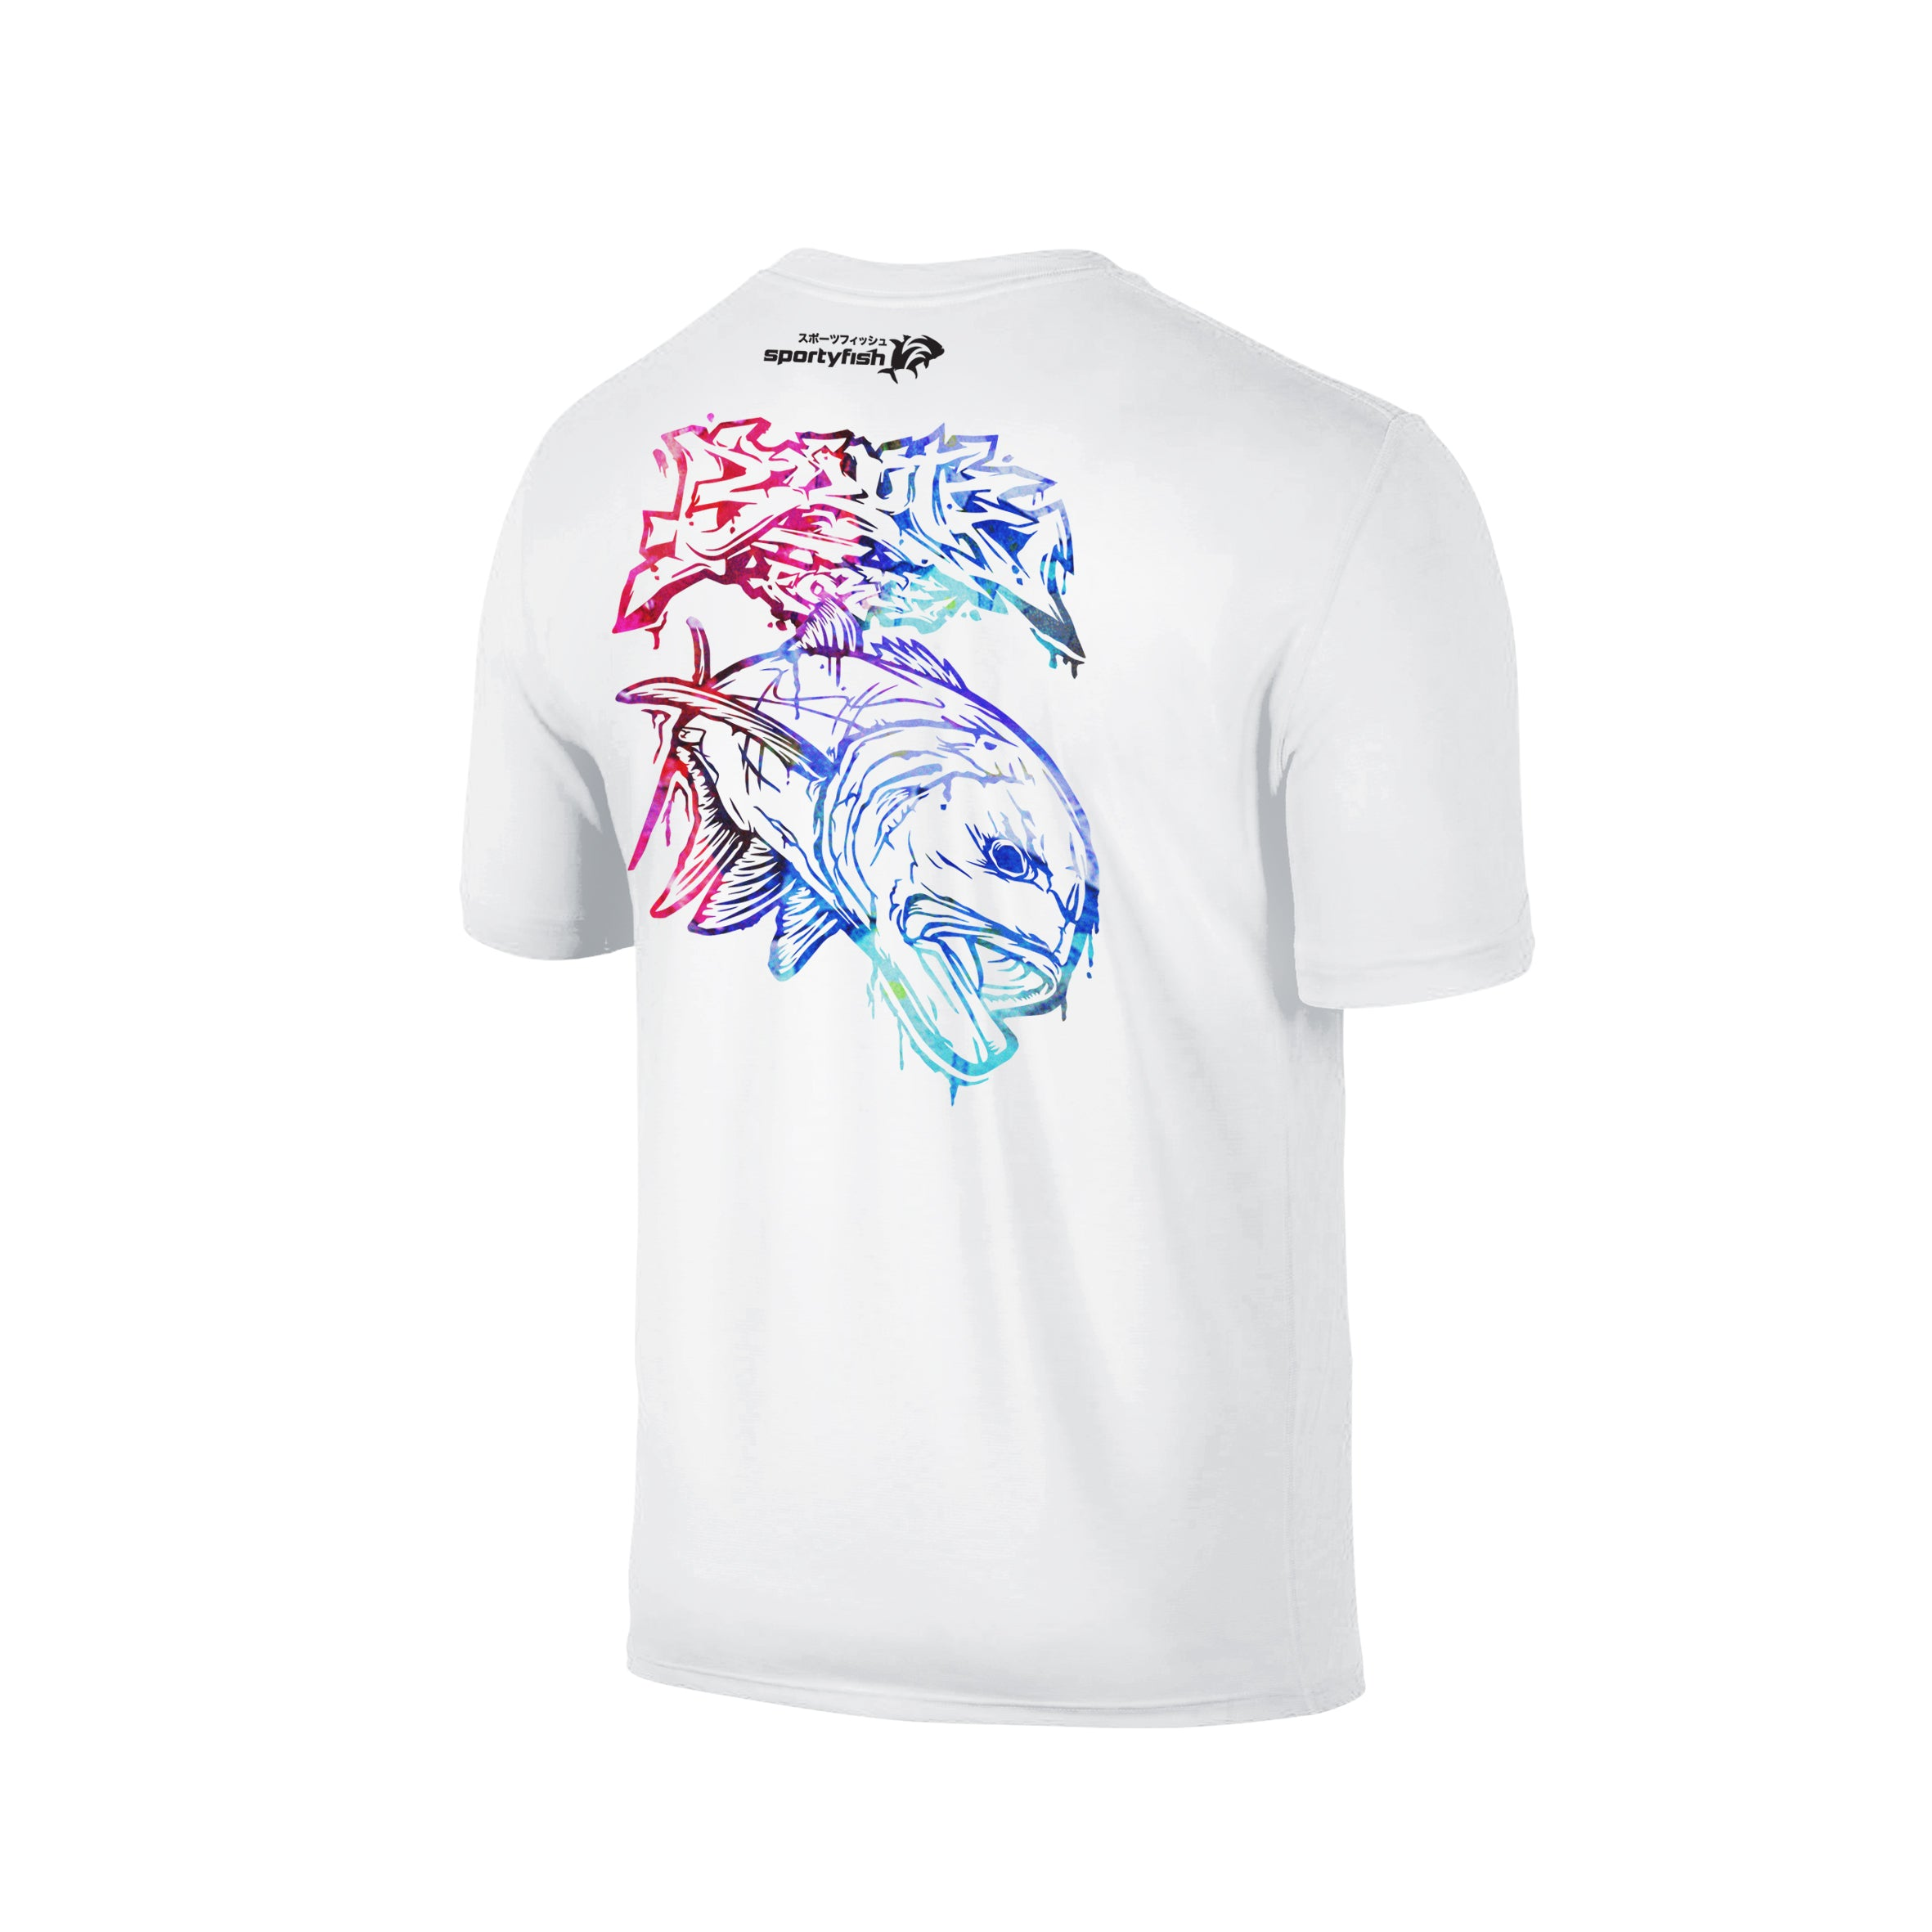 Wildstyle Graffiti Series White T-shirt(back view)Paint Splatter: Giant Trevally